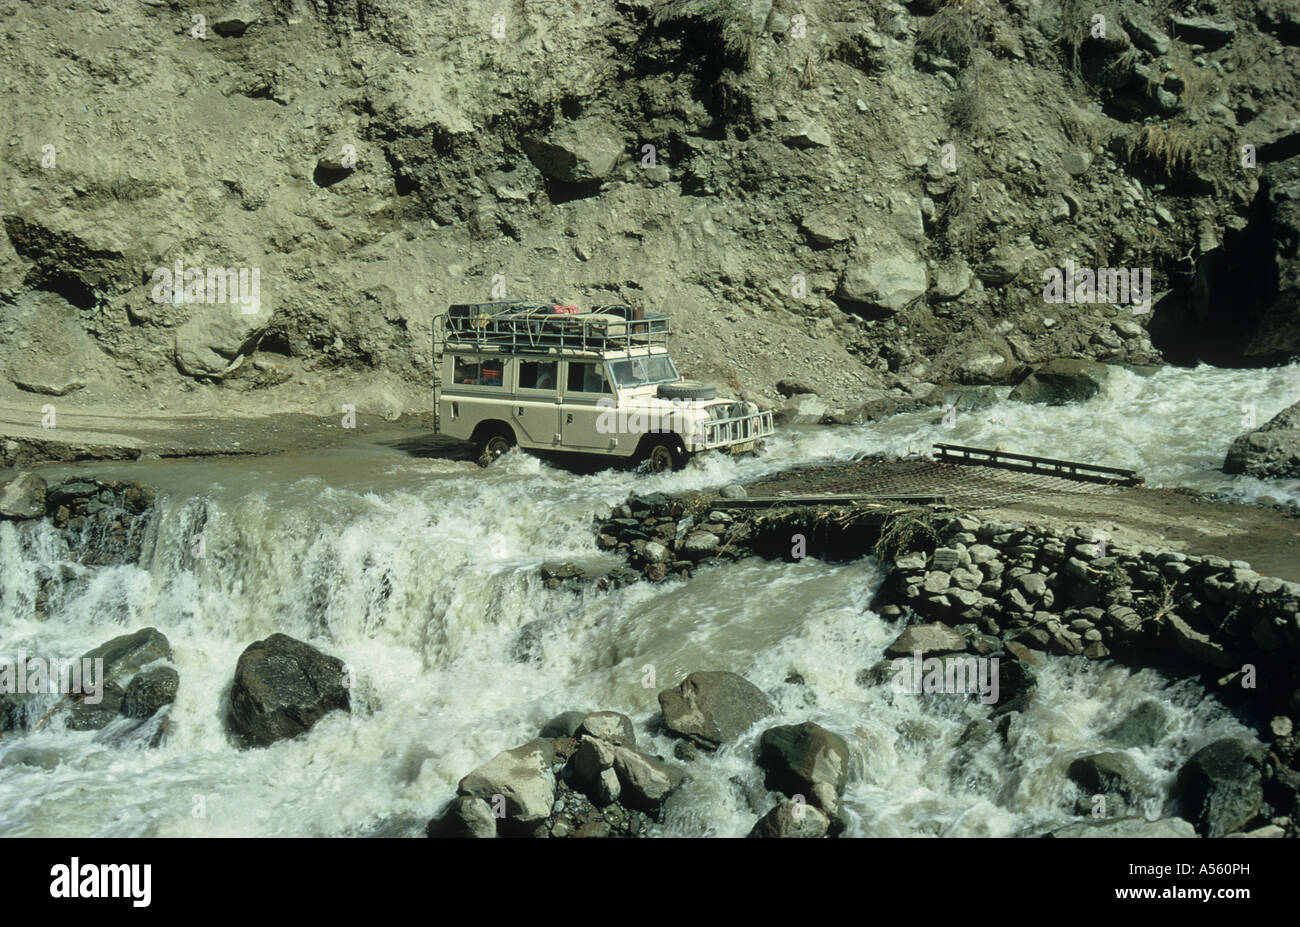 Land Rover Series III crossing a fast flowing glacier melt river Lowarai Pass Dir to Chitral Northwest Pakistan - Stock Image